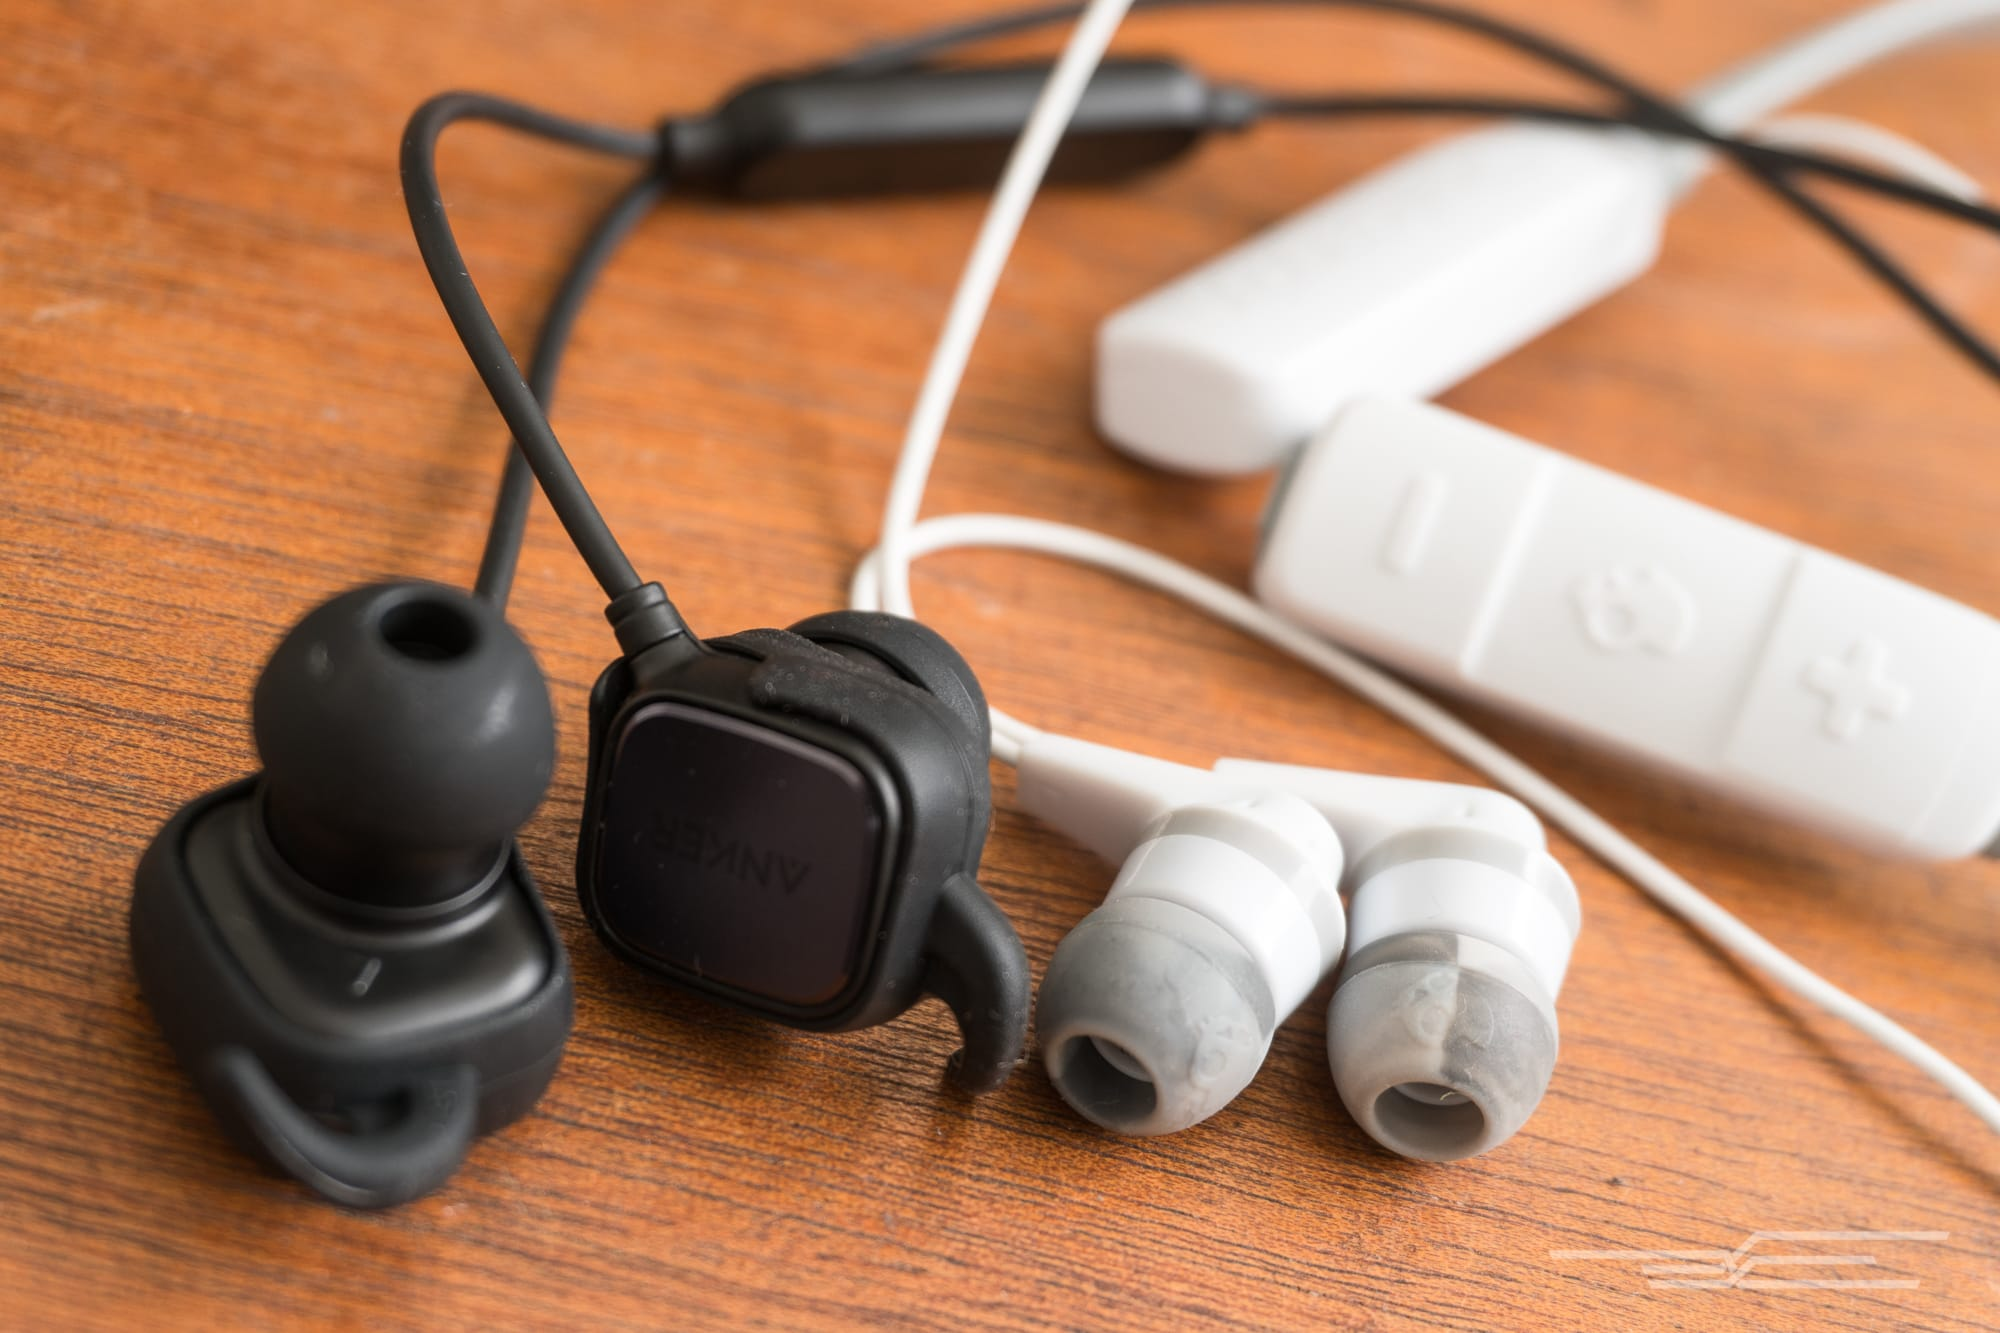 e4178ab61f8 The best wireless earbuds under $50